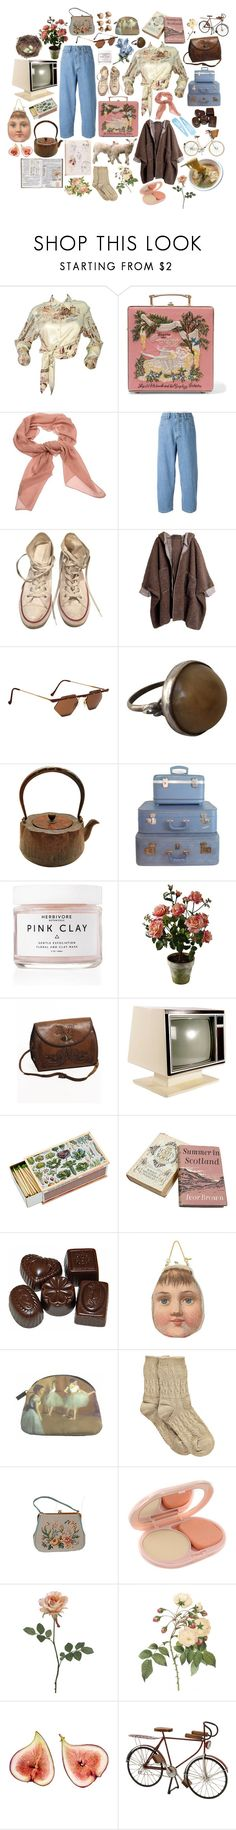 """""""Periphery"""" by powerjazz ❤ liked on Polyvore featuring Hermès, Olympia Le-Tan, Salvatore Ferragamo, Société Anonyme, Converse, Retrò, Herbivore, INDIE HAIR, Dollydagger and Boohoo"""